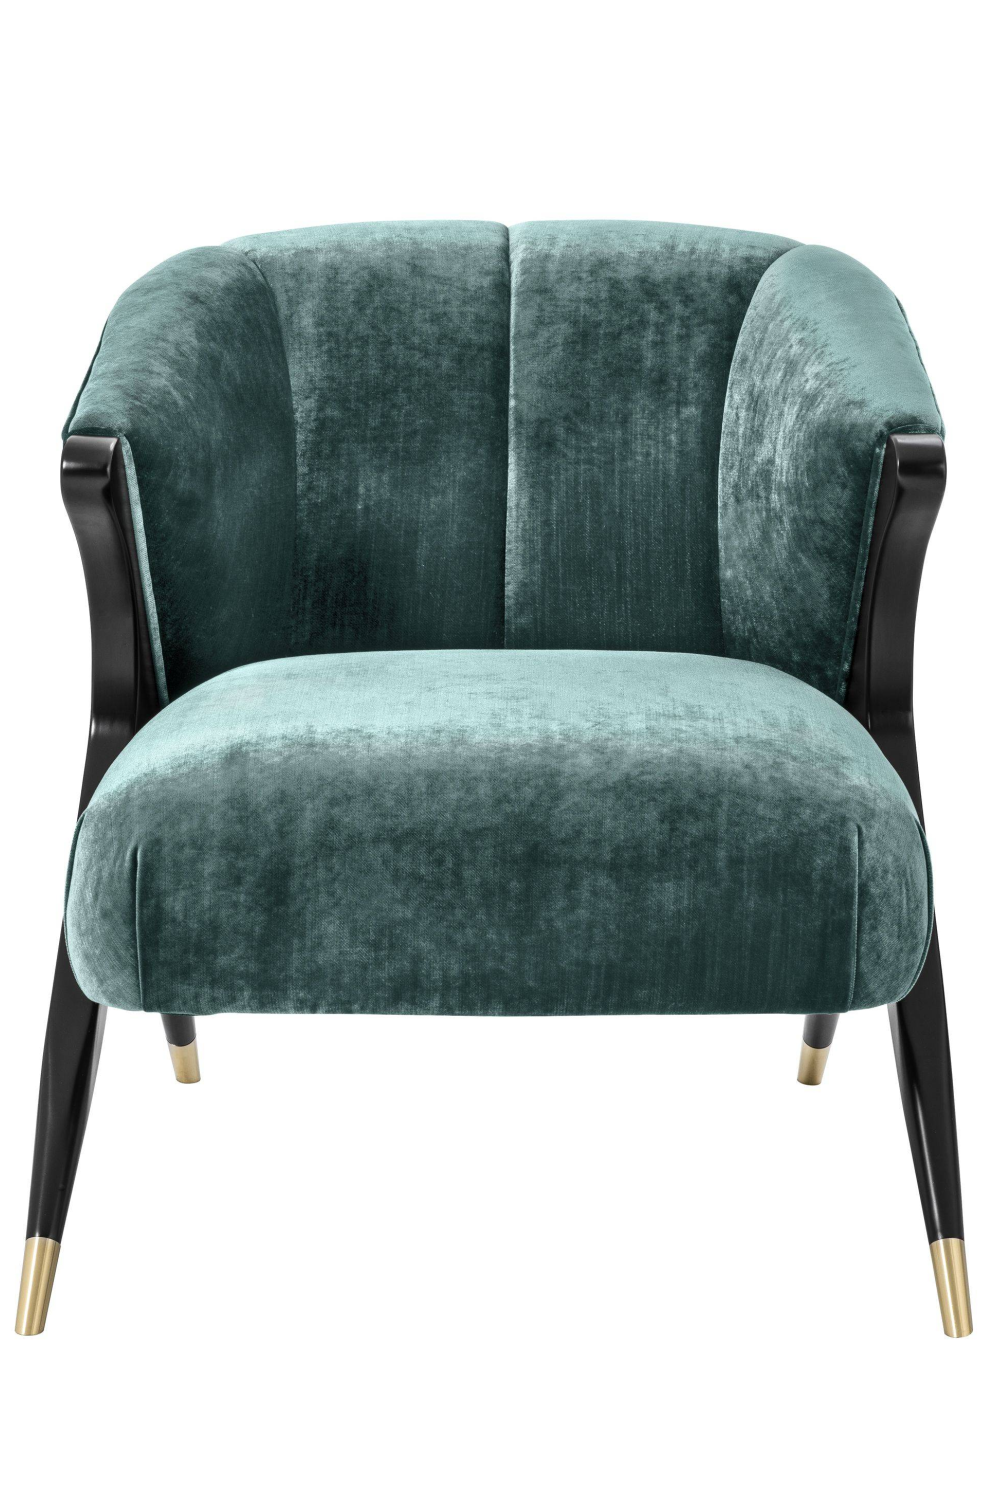 Green Upholstered Barrel Chair | Eichholtz Pavone